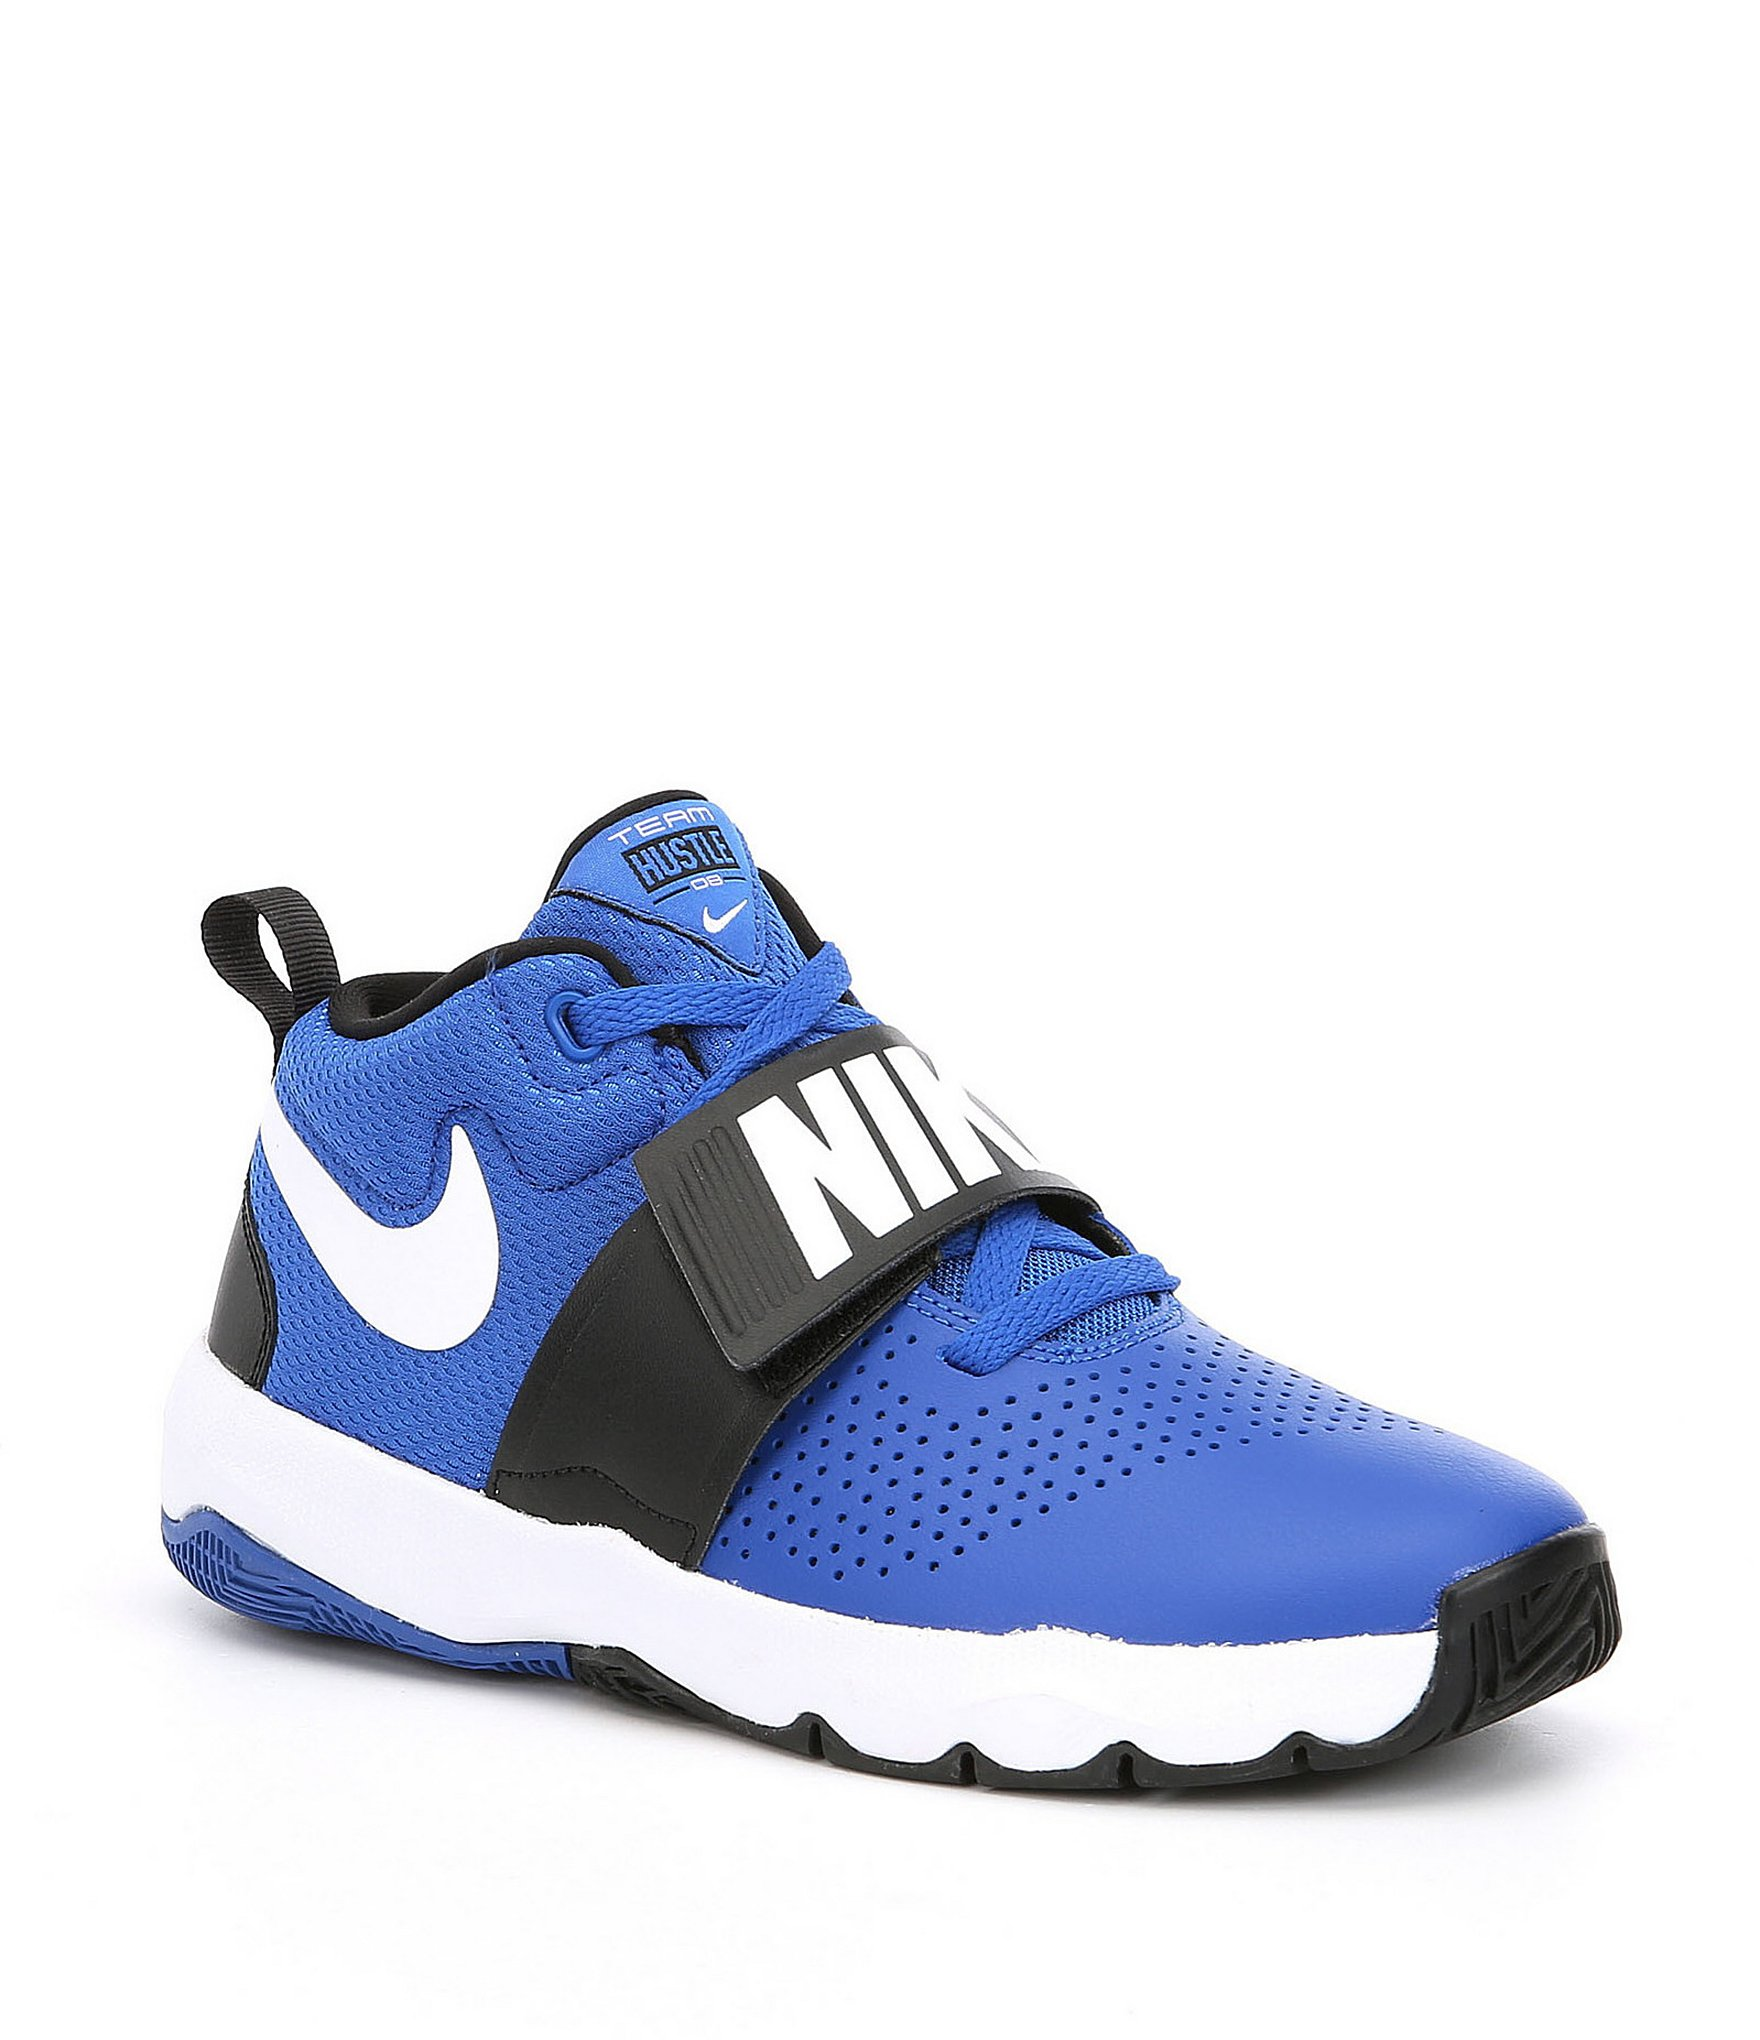 Nike Basketball Shoes Boys Clearance